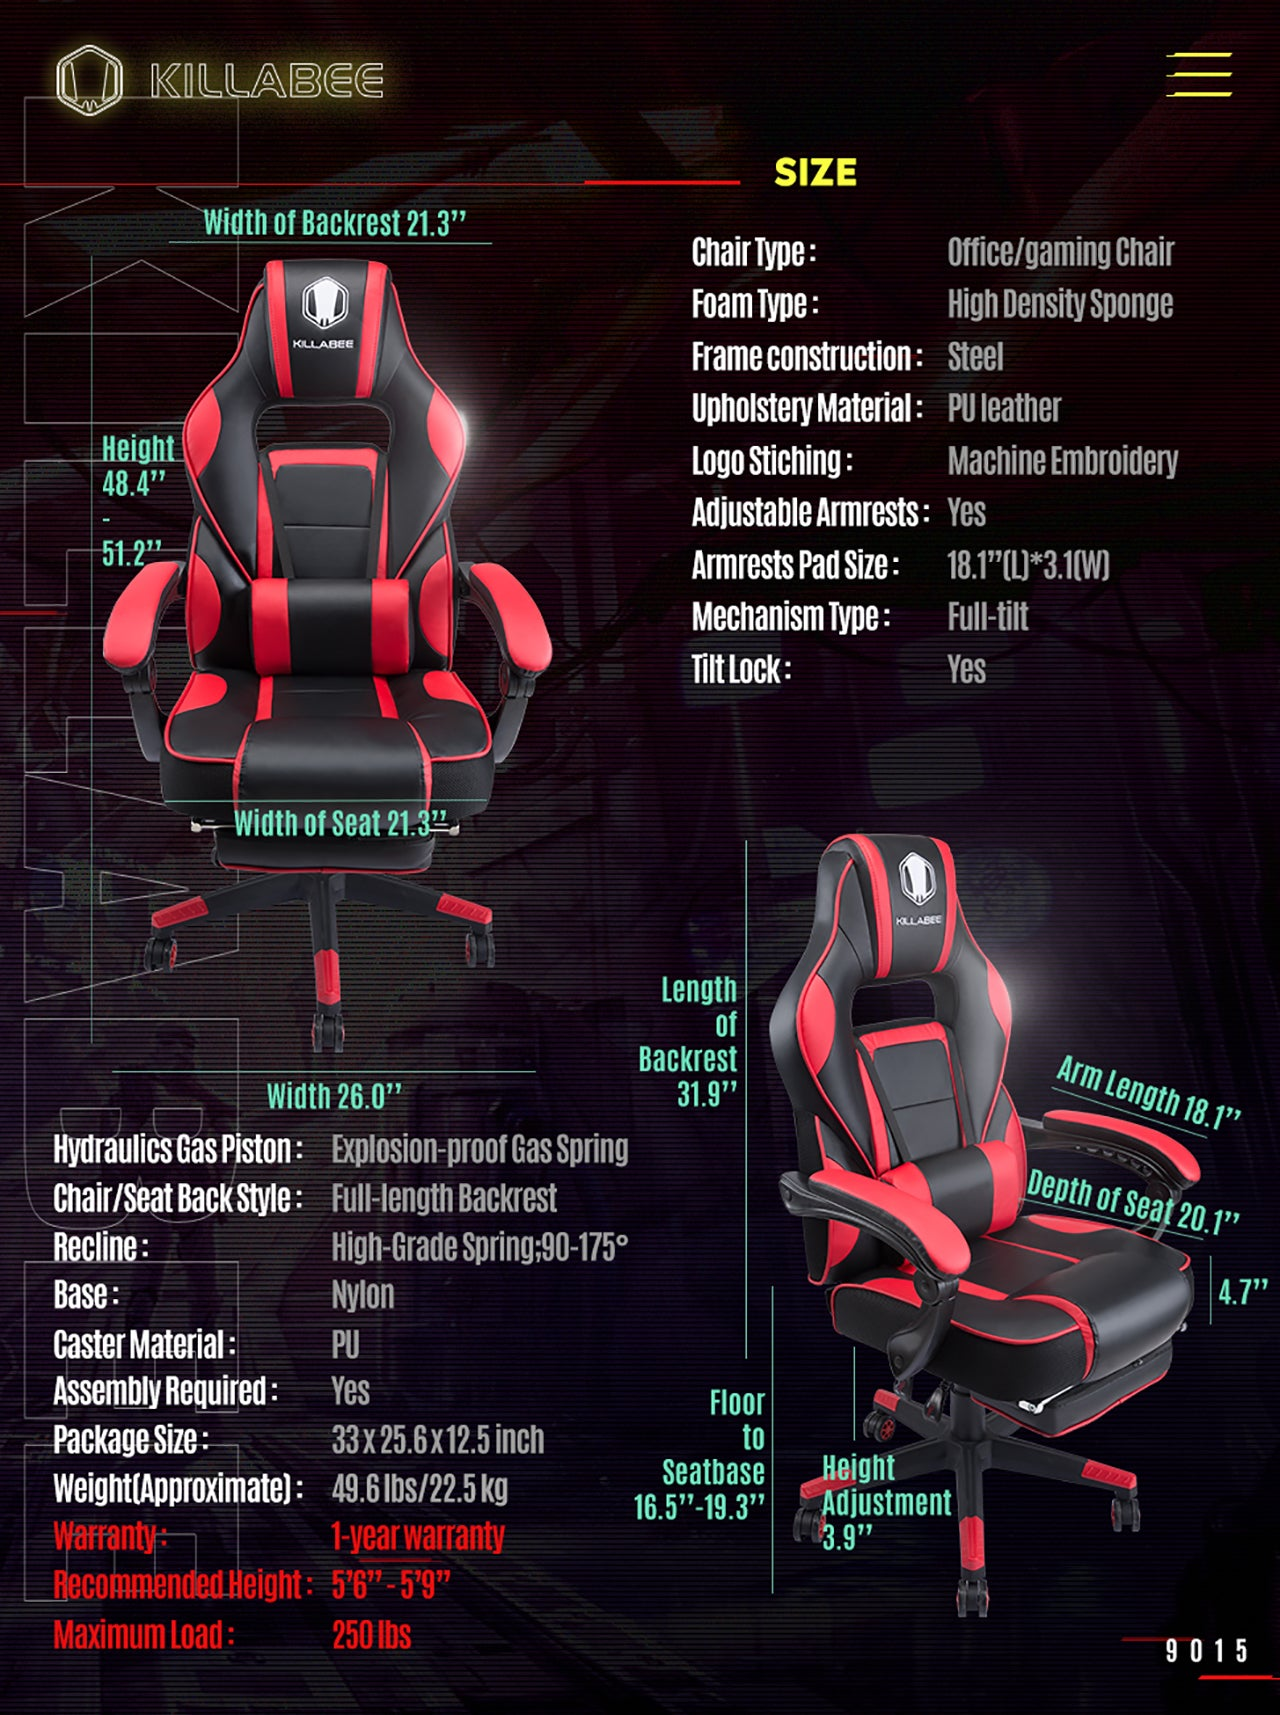 KILLABEE MASSAGE GAMING CHAIR 9015 RED SPECIFICATION